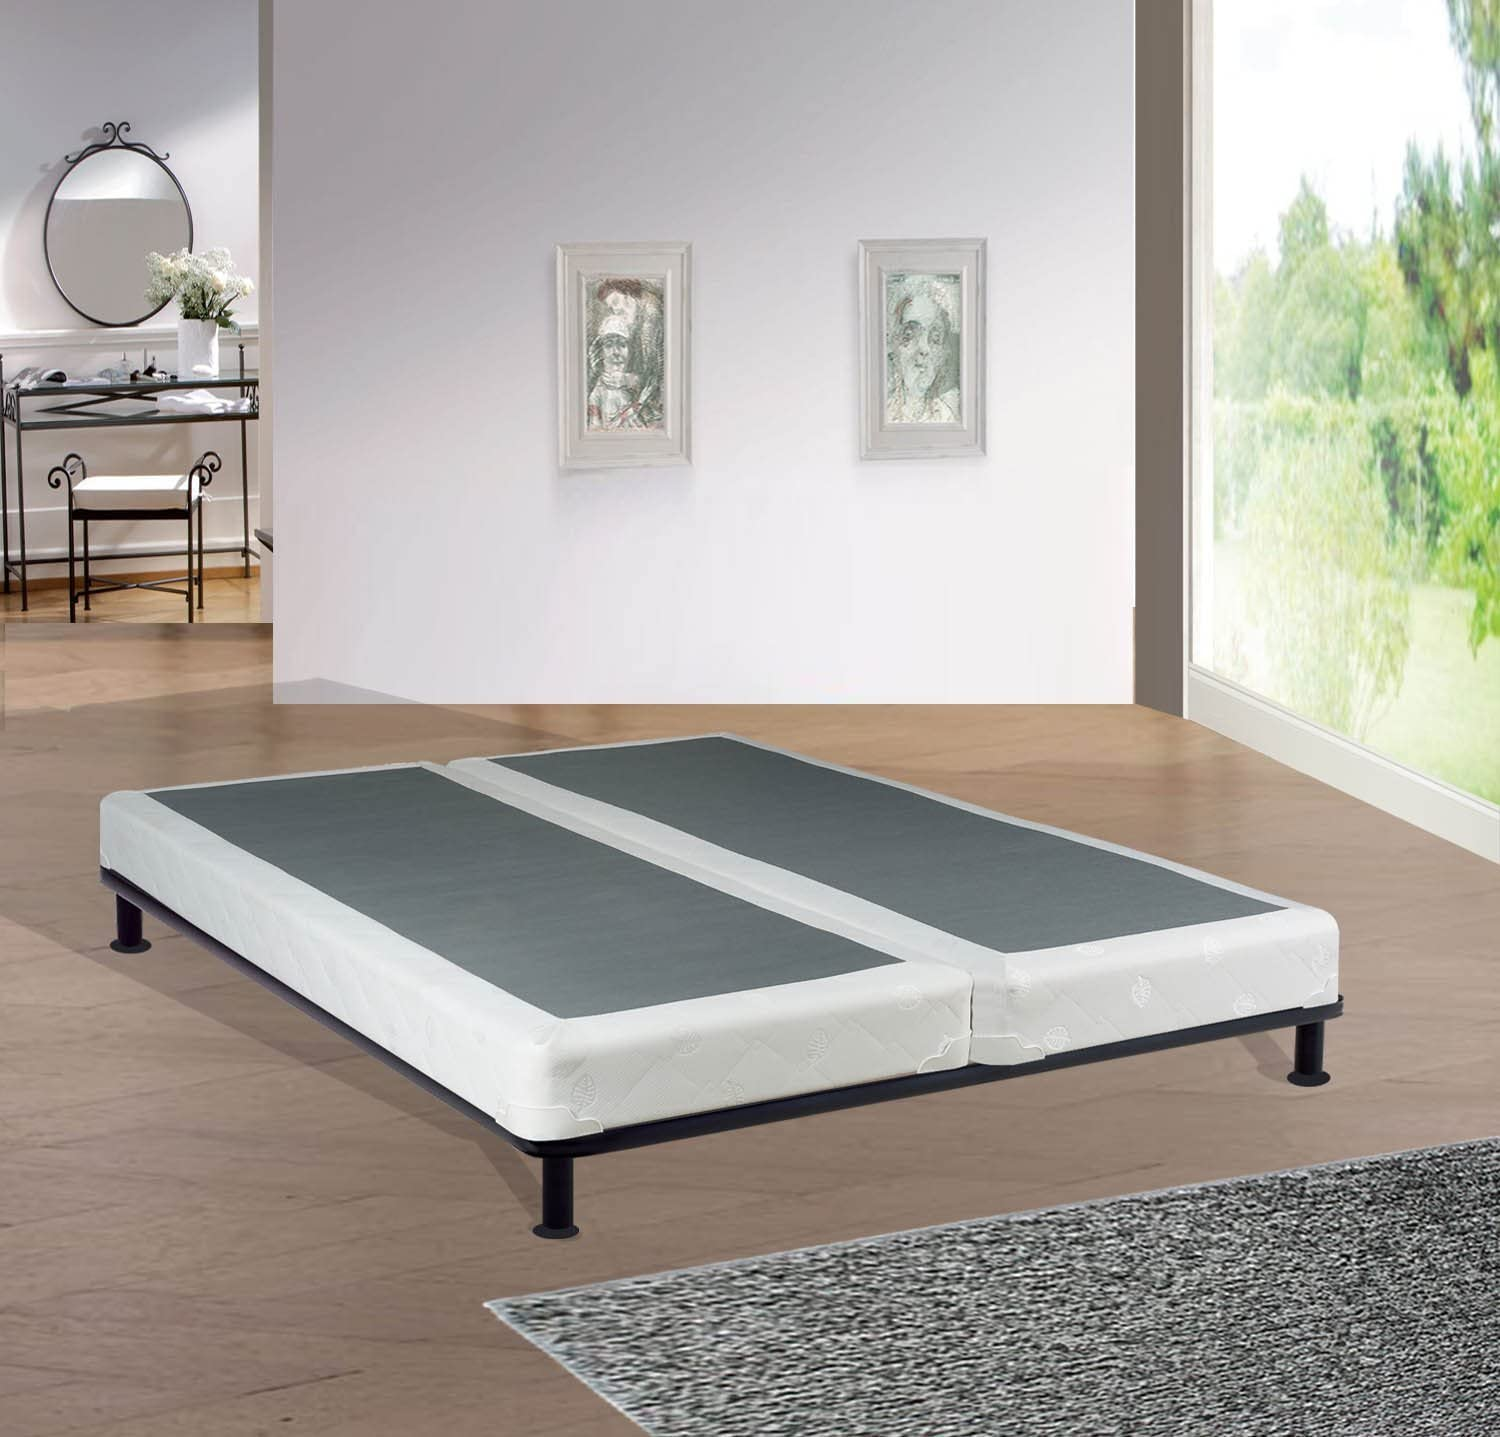 Spinal Solution, 4 inch Strong and Sturdy Assembled Traditional Wood Box Spring Foundation for Mattress